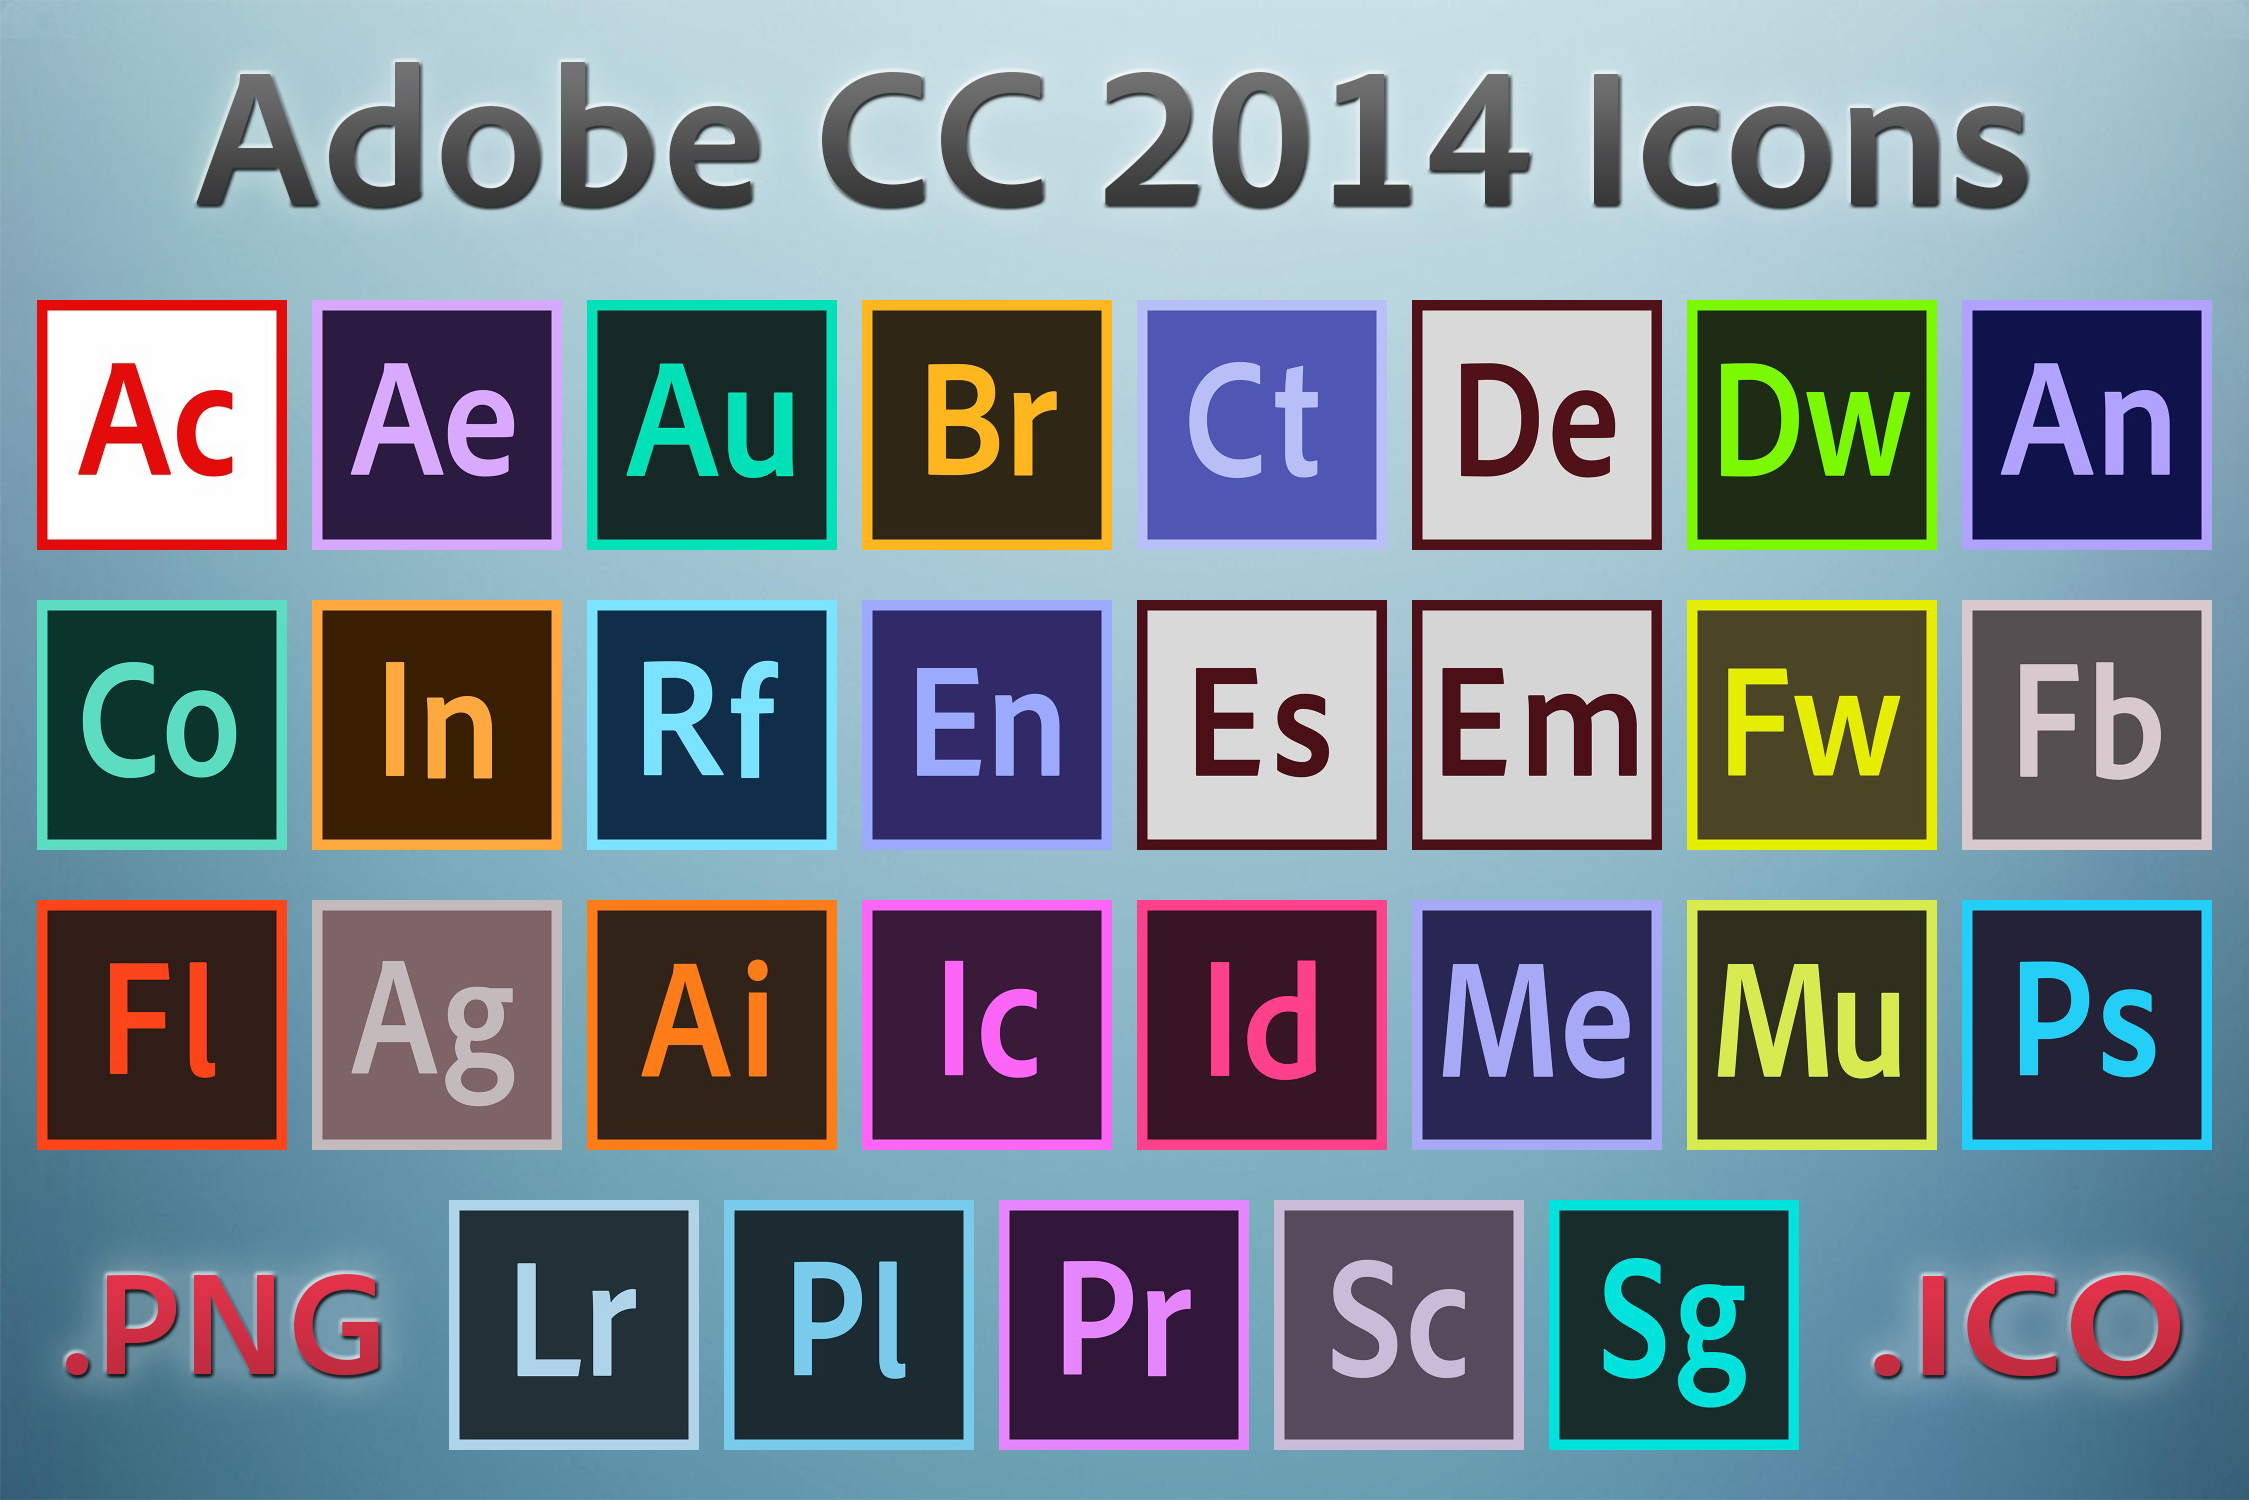 Adobe Cc 2014 Icons By Rrpjdisc On Deviantart